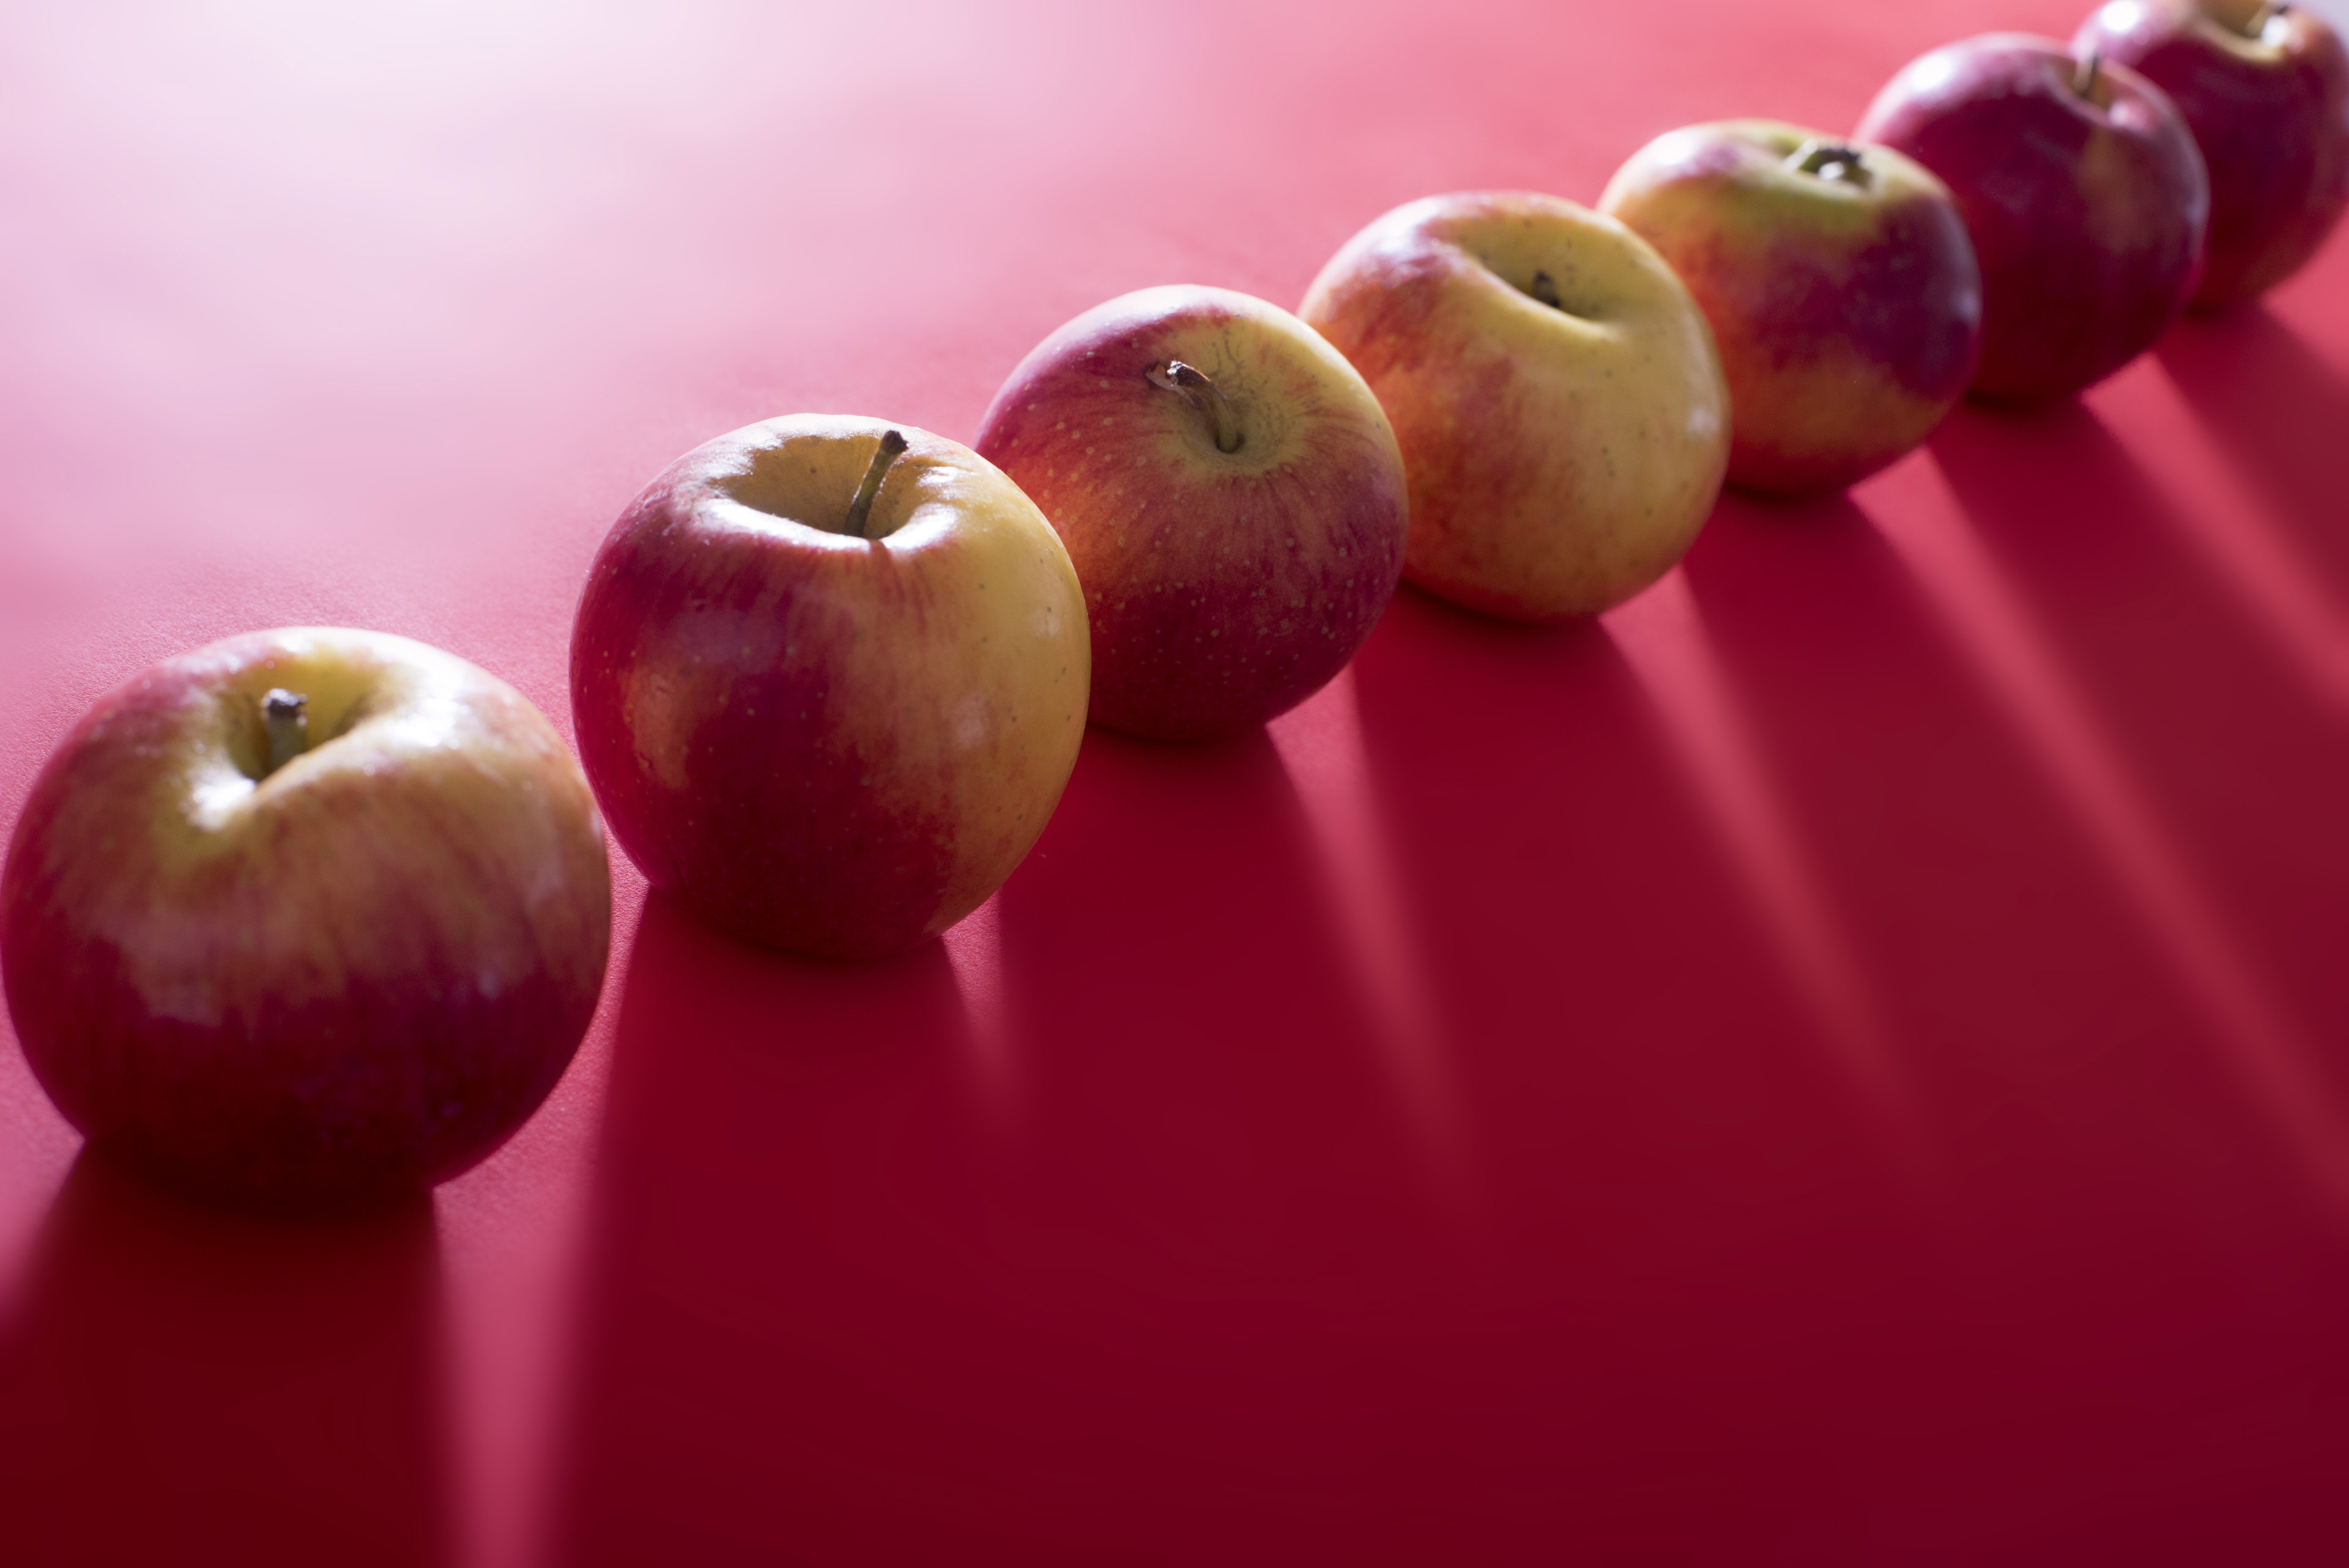 Diagonal line of fresh whole apples backlit on a festive red background casting a shadow over copy space